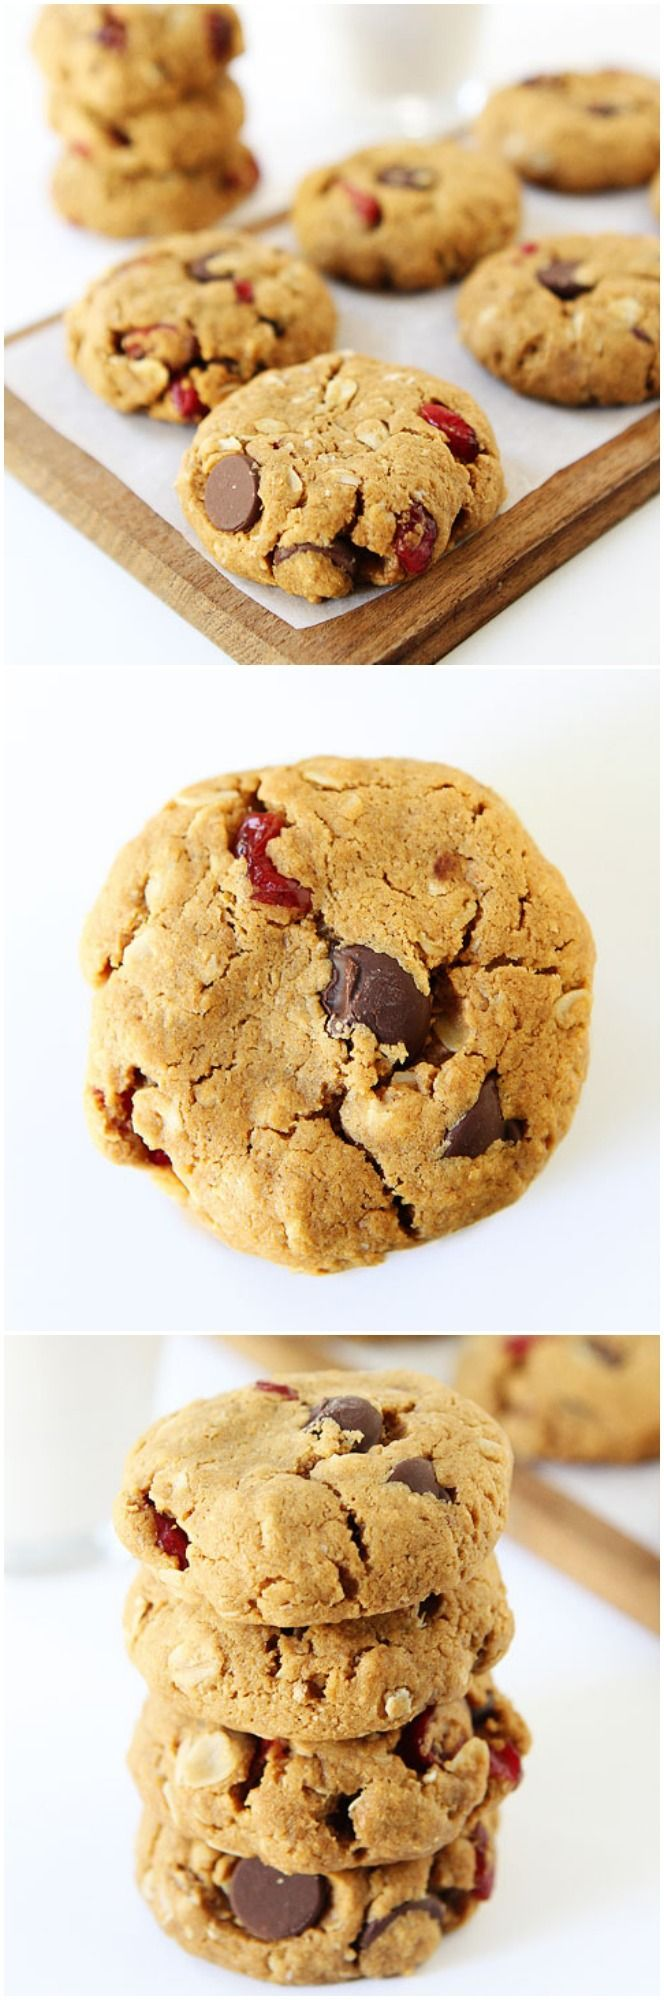 Healthy Almond Cranberry Oatmeal Cookie Recipe on twopeasandtheirpod.com LOVE these vegan cookies!